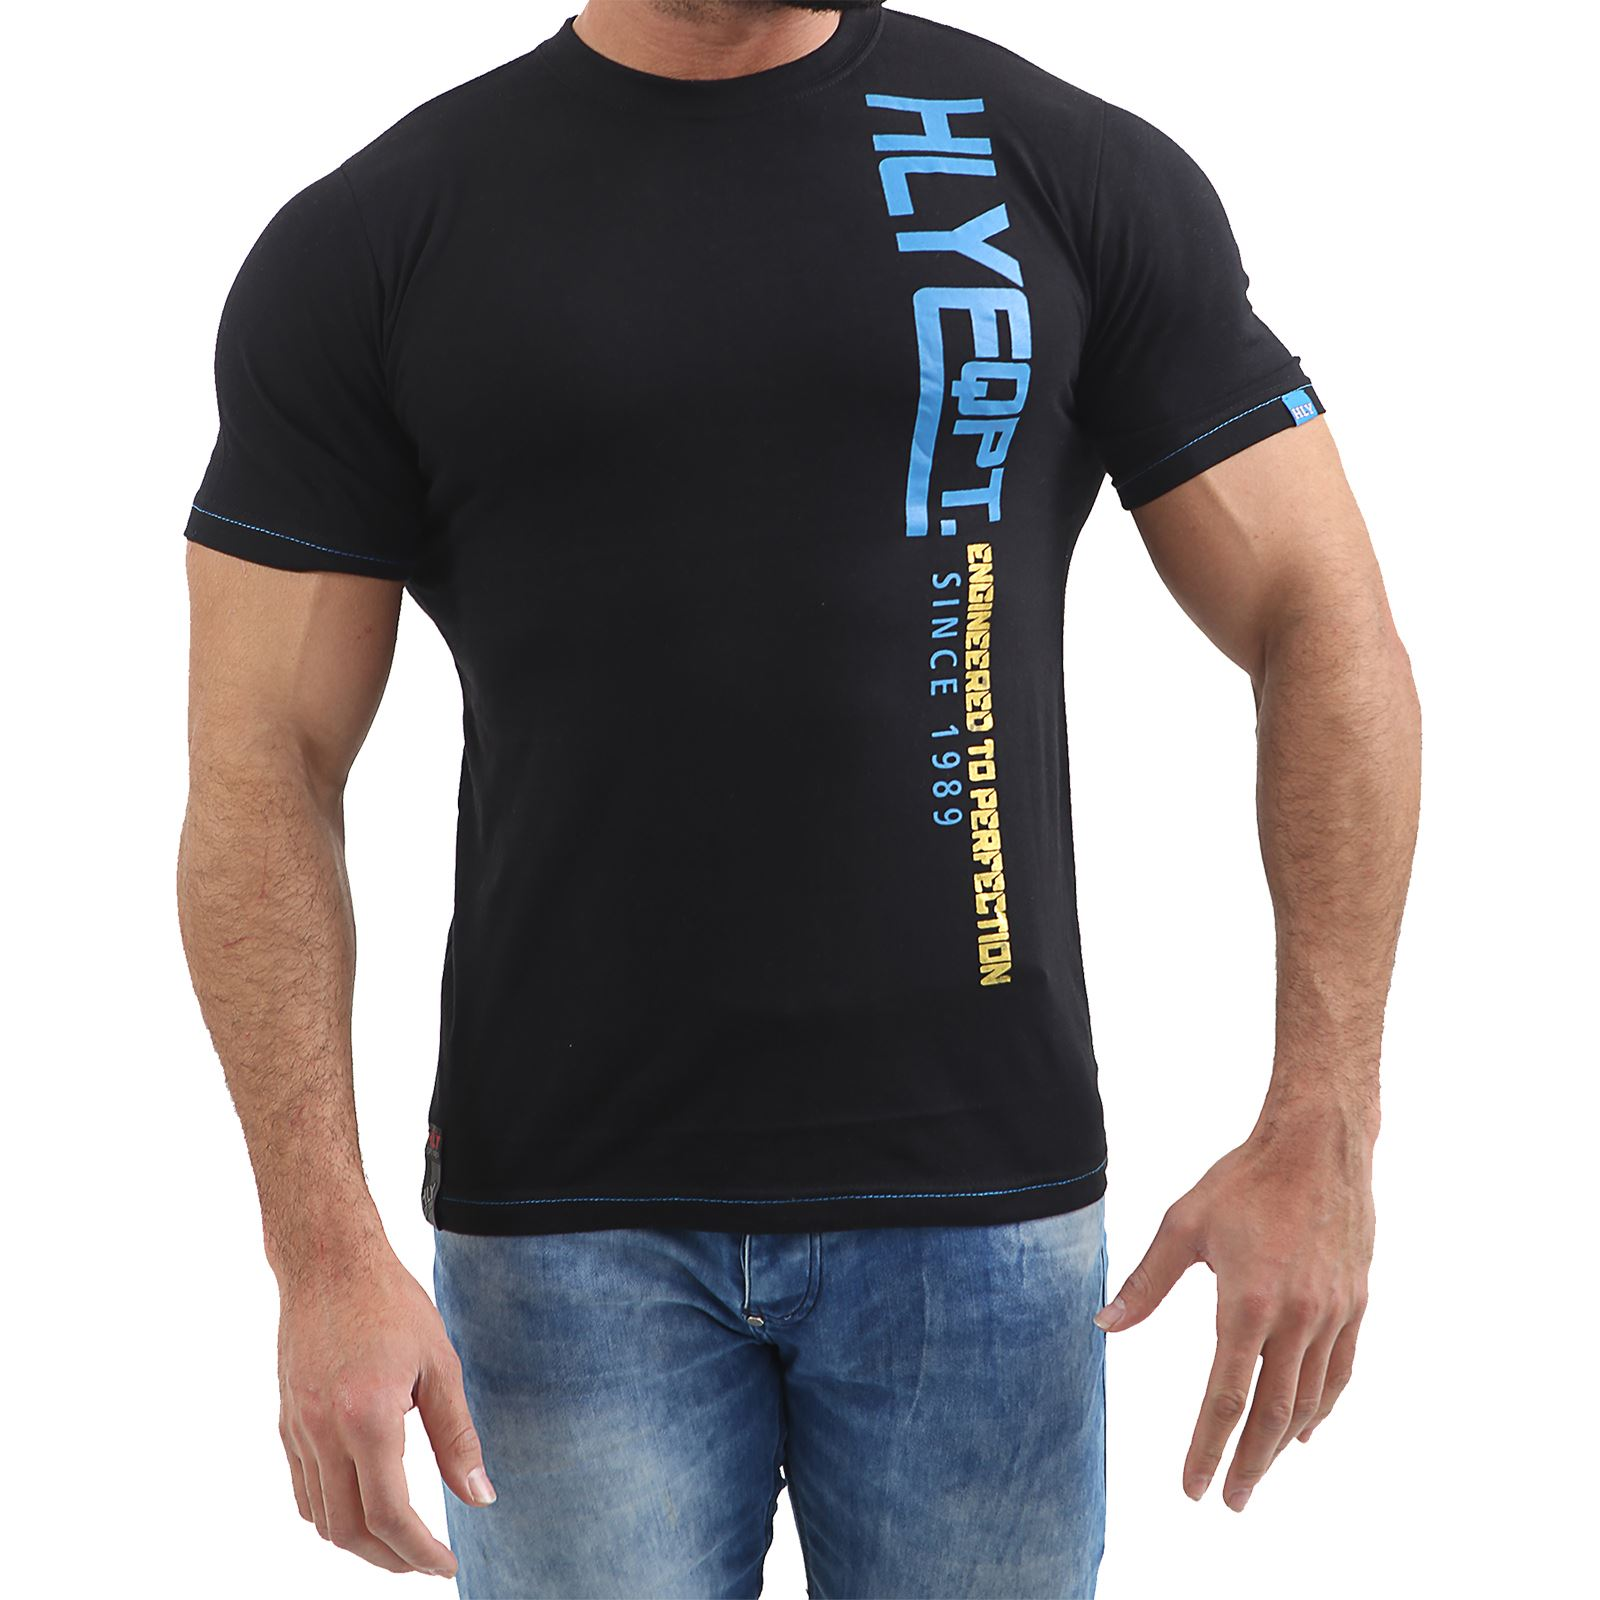 Mens-HLY-EQPT-Printed-T-Shirt-100-Cotton-Gym-Athletic-Training-Tee-Top-Summer thumbnail 3